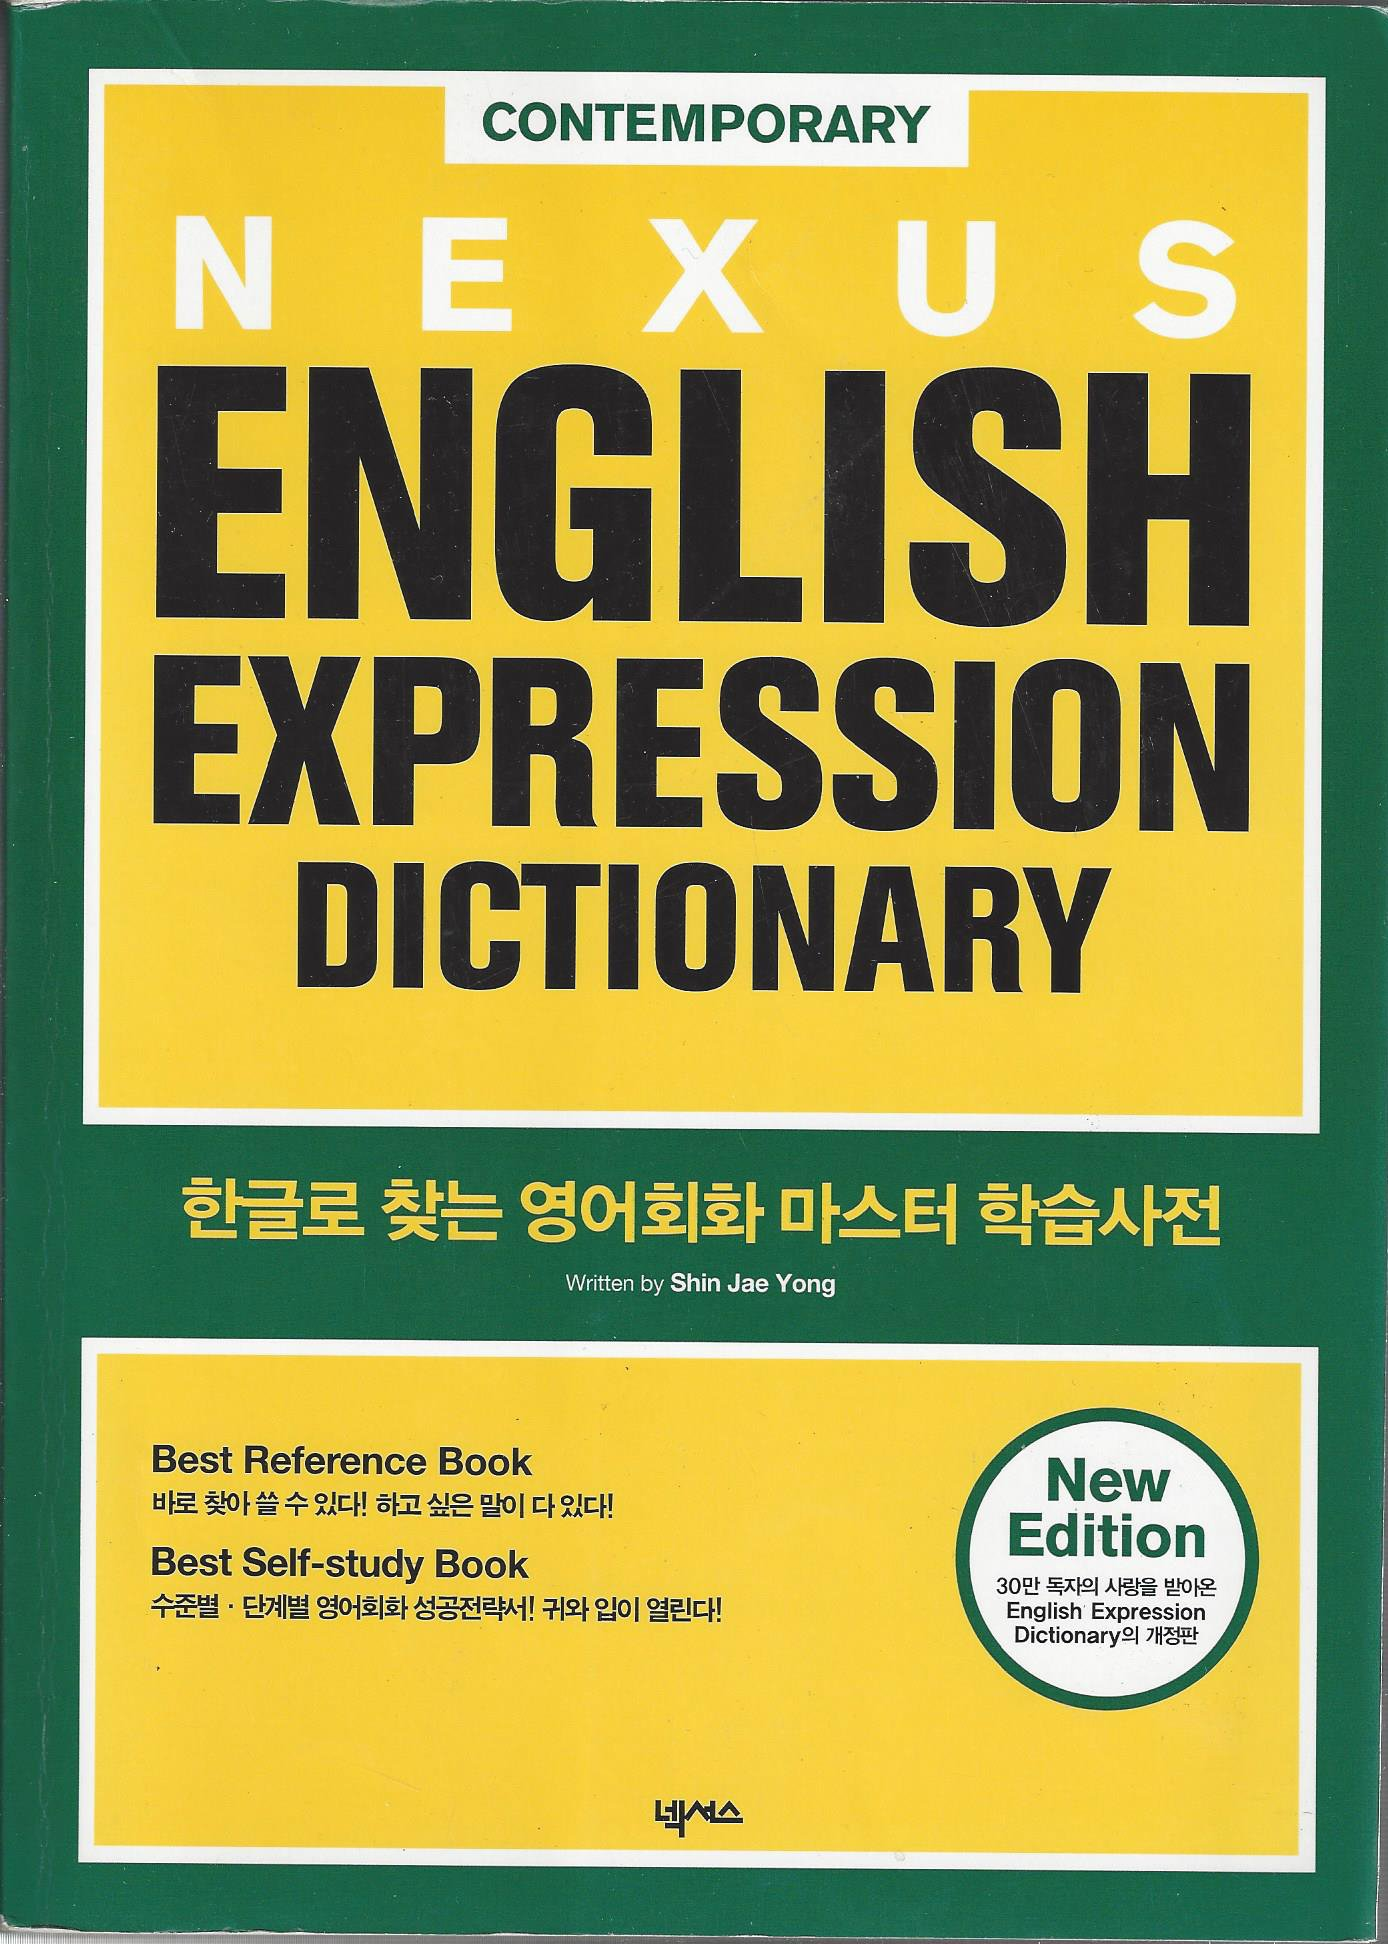 Nexus english expression dictionary mp3 download